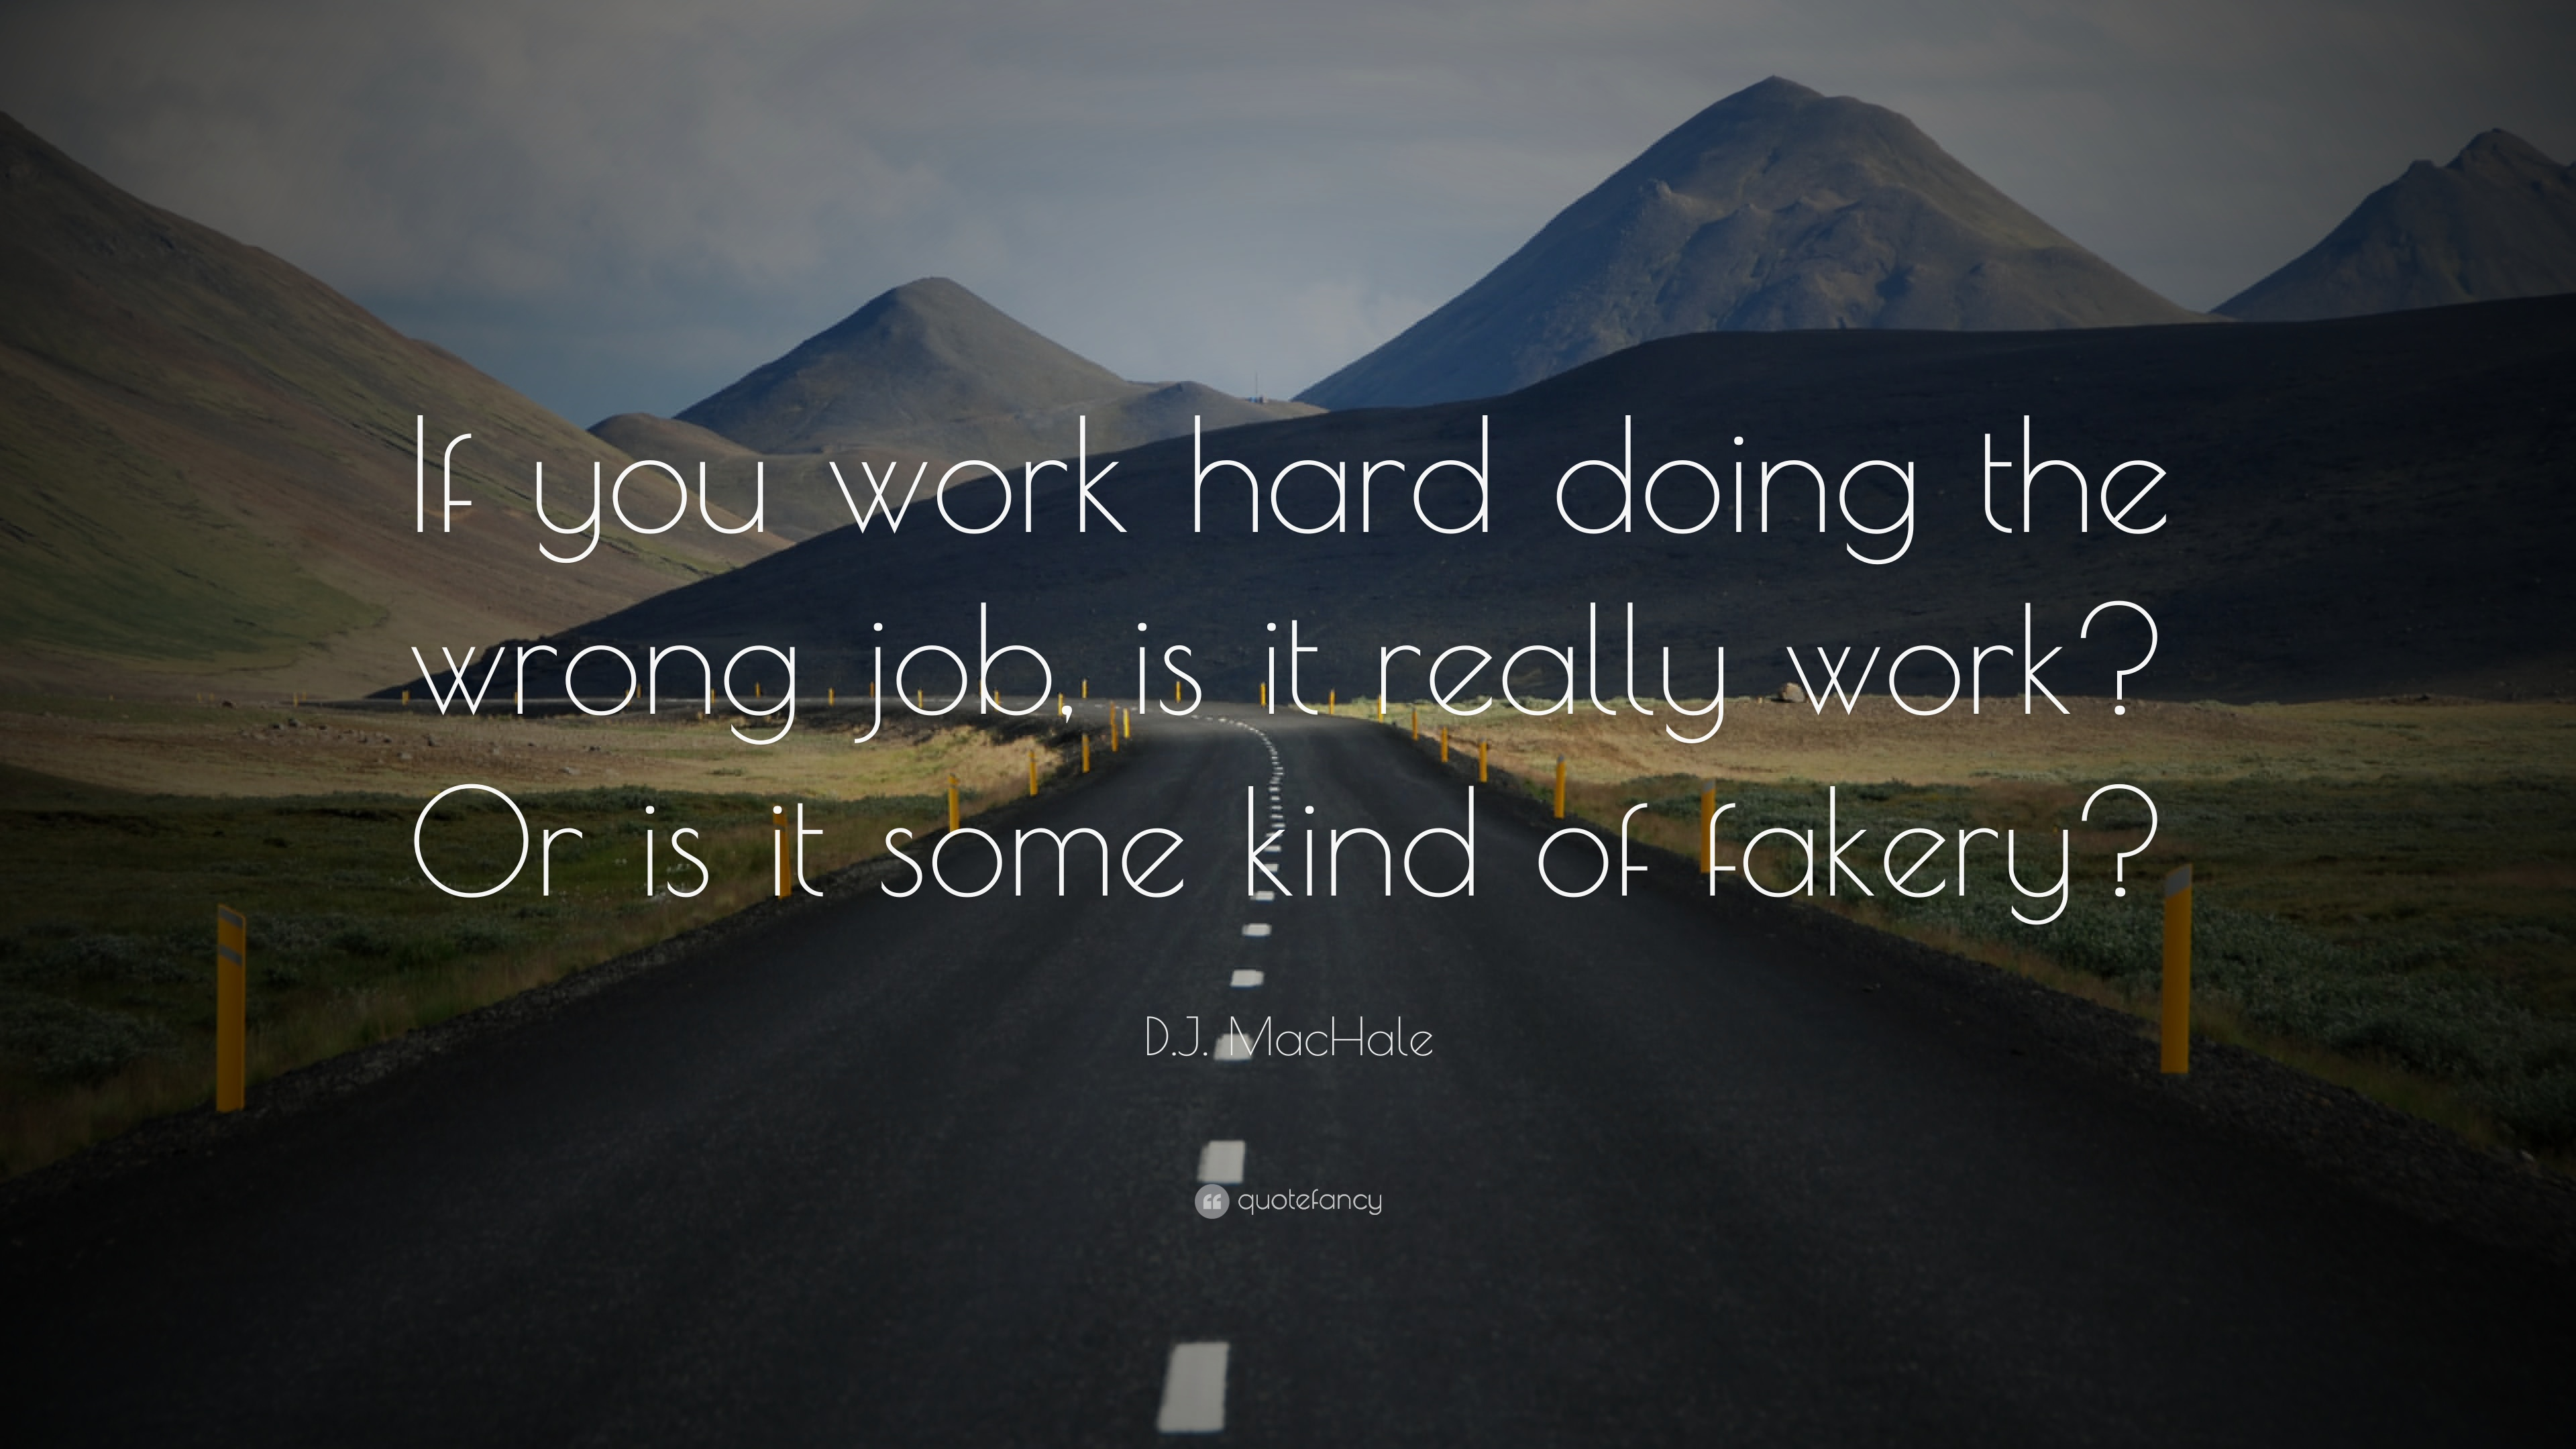 d j machale quote if you work hard doing the wrong job is it